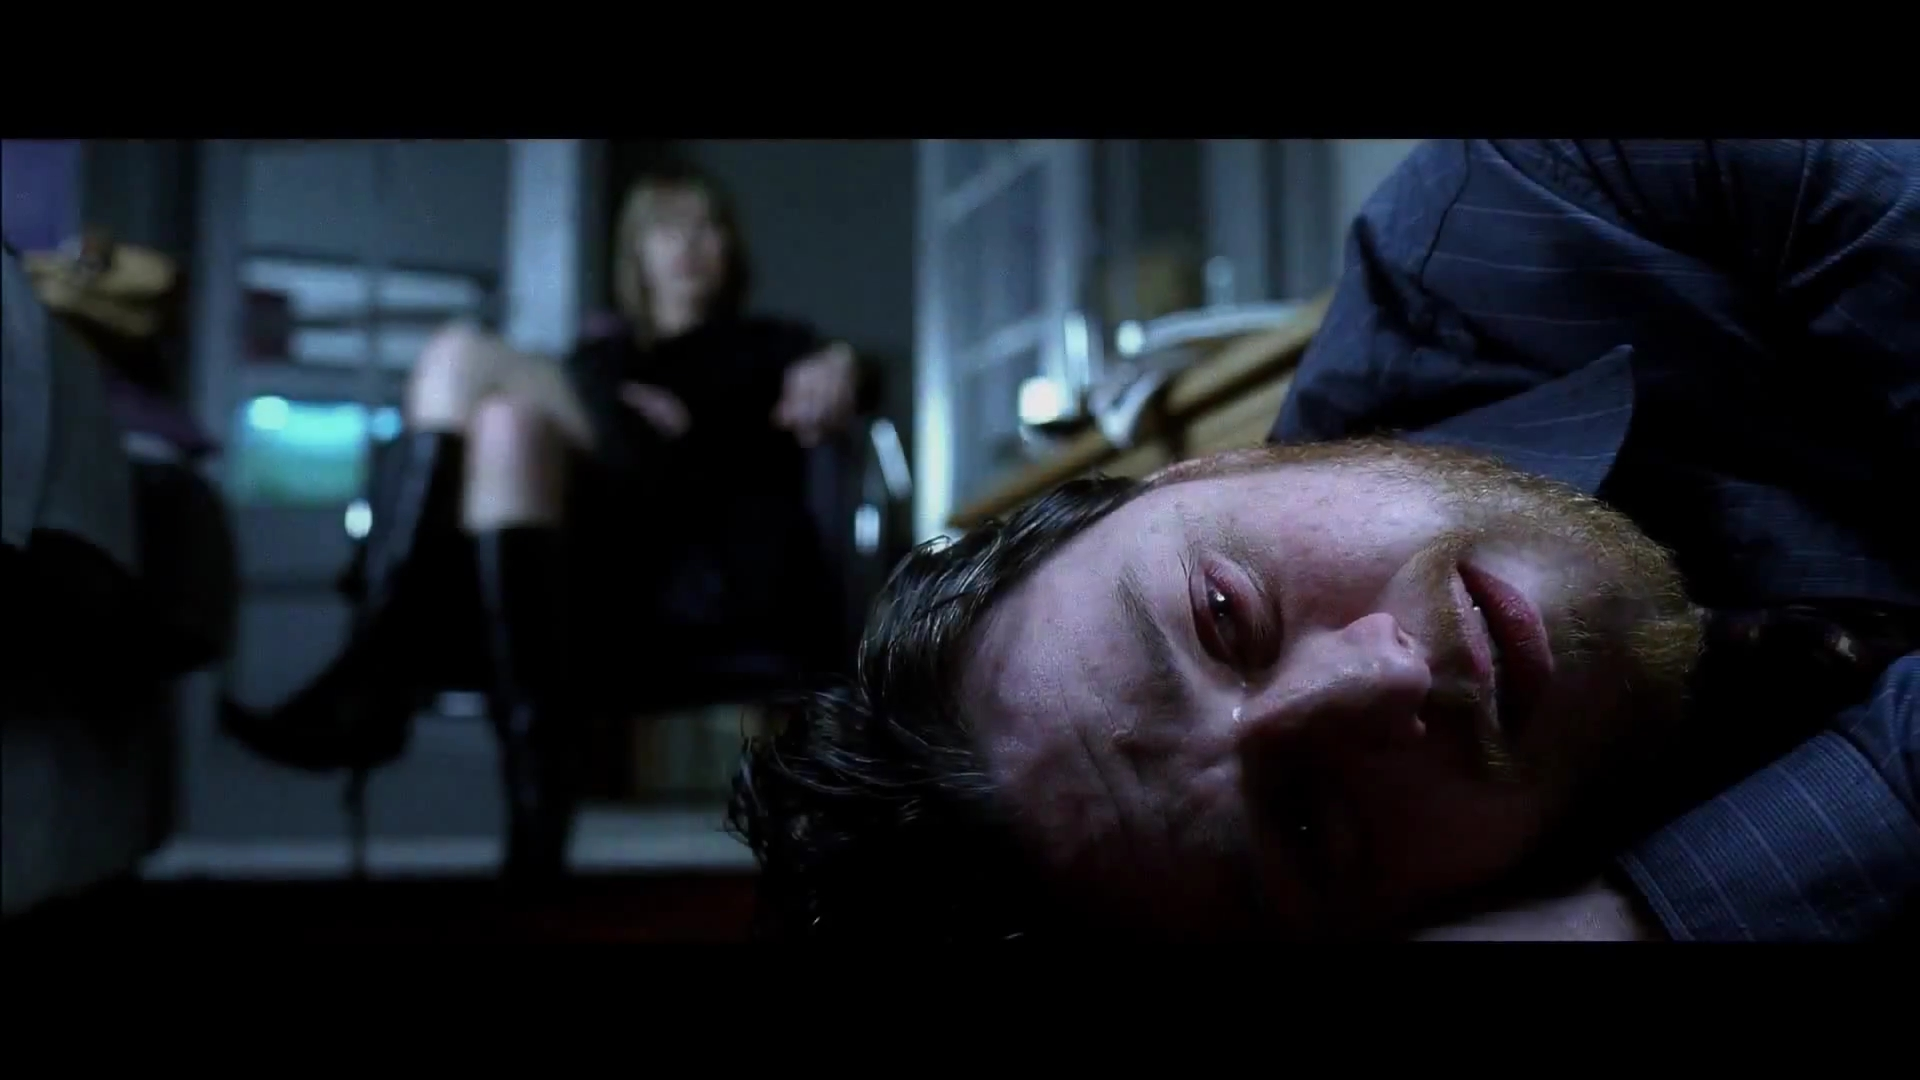 Amazing Wallpaper Movie Filth - filth-trailer-1-james-mcavoy-34885747-1920-1080  Pictures_74784.jpg